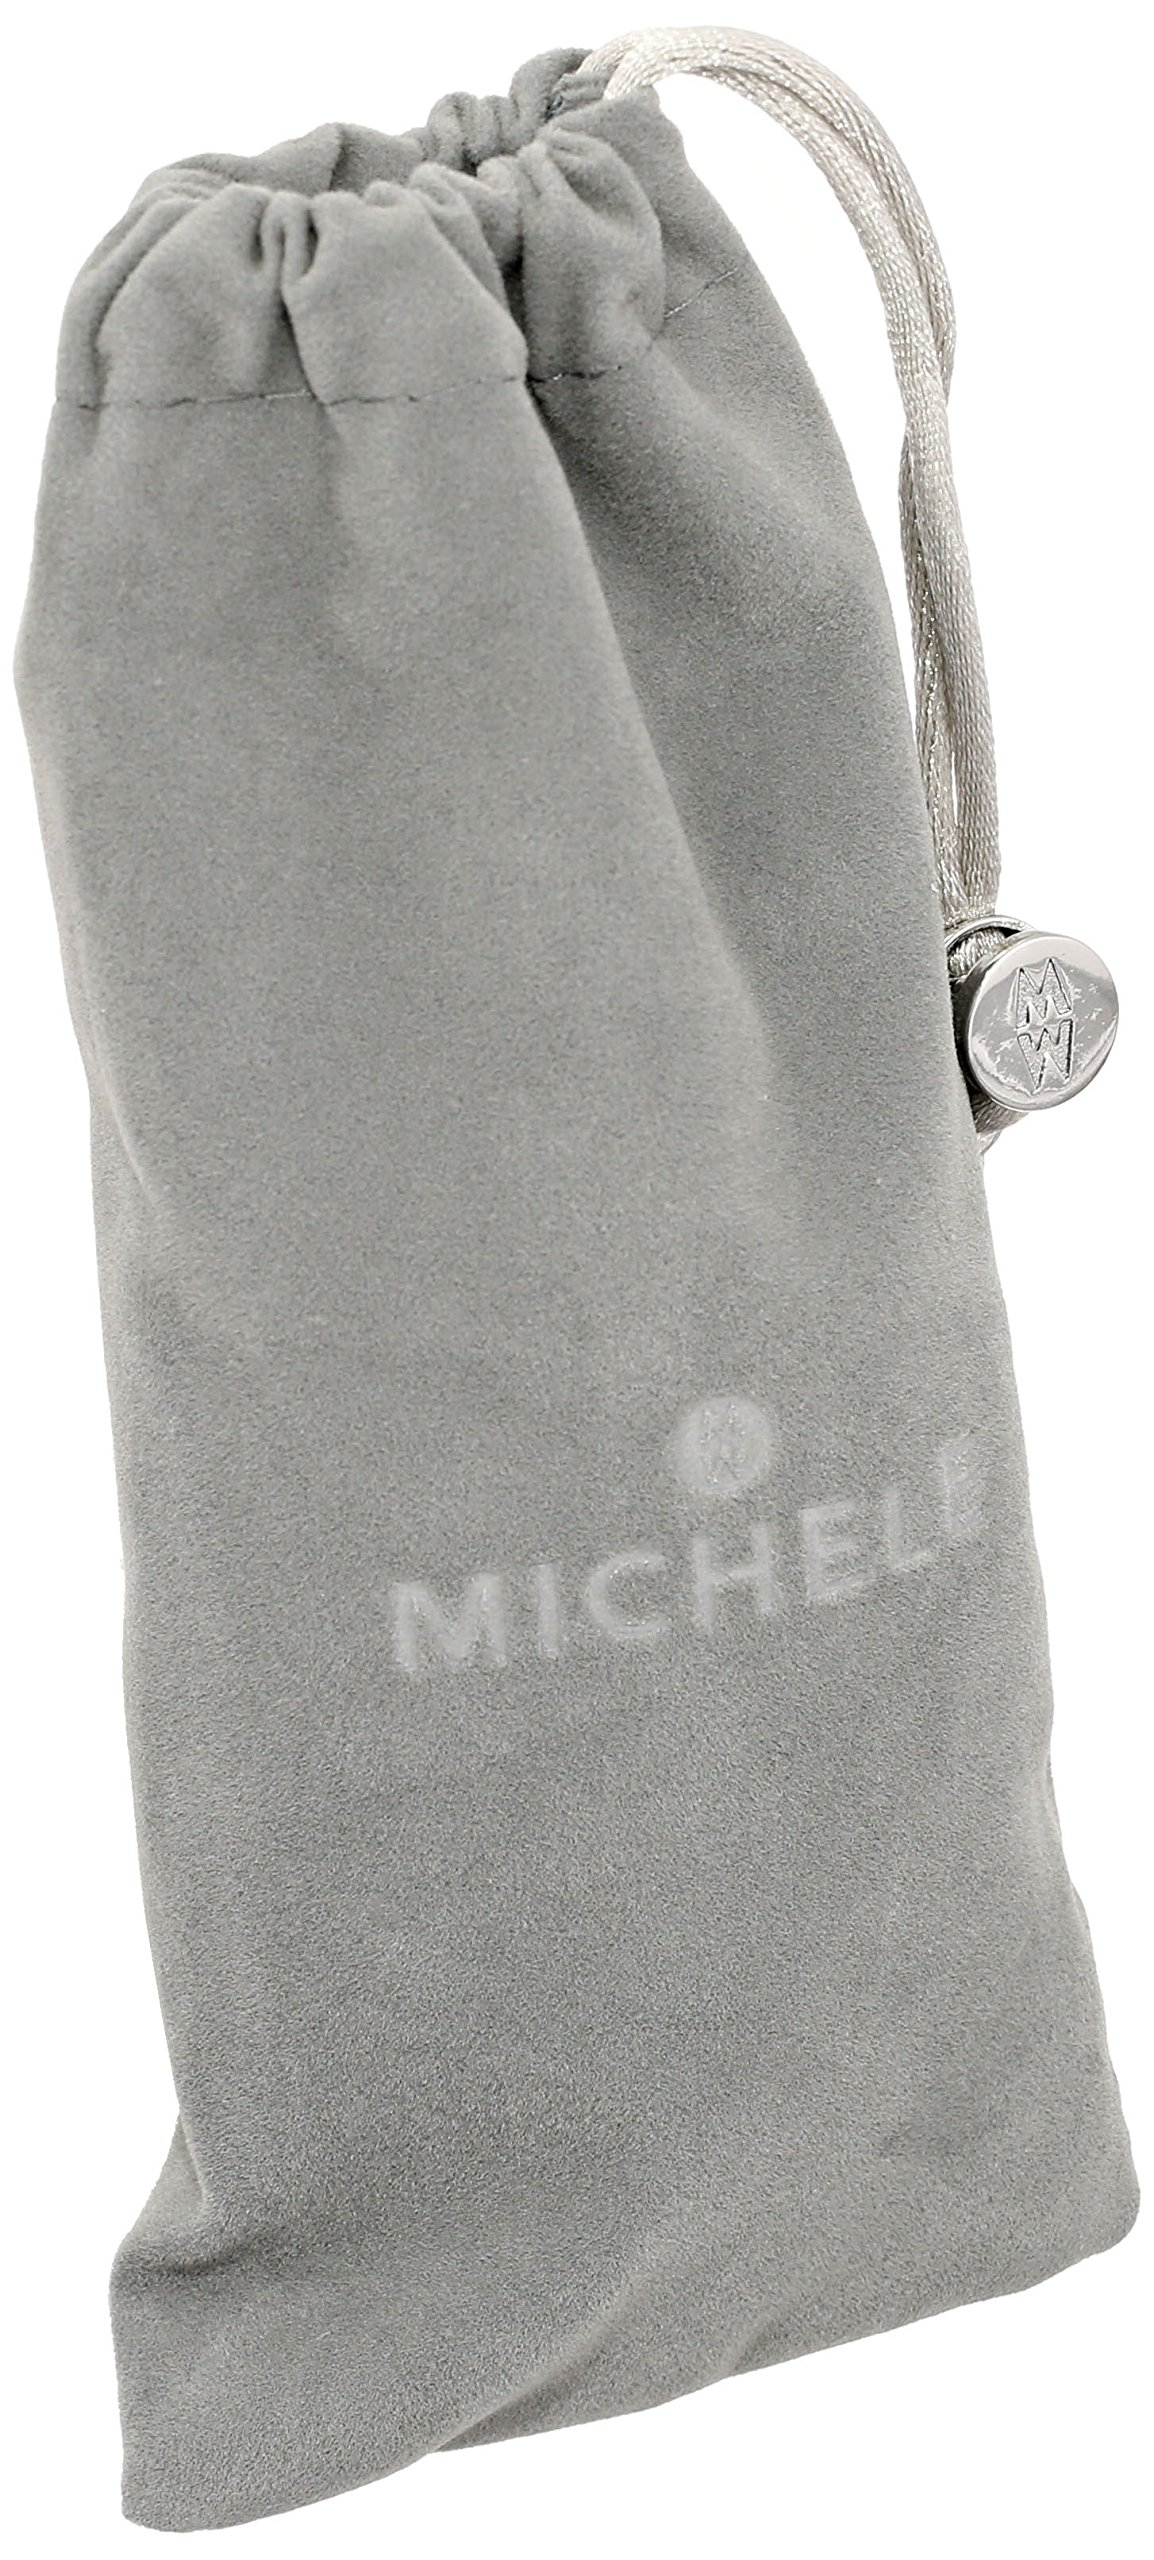 MICHELE MS16DM285048 Deco 16 16mm Stainless Steel Two Tone Watch Bracelet by MICHELE (Image #4)